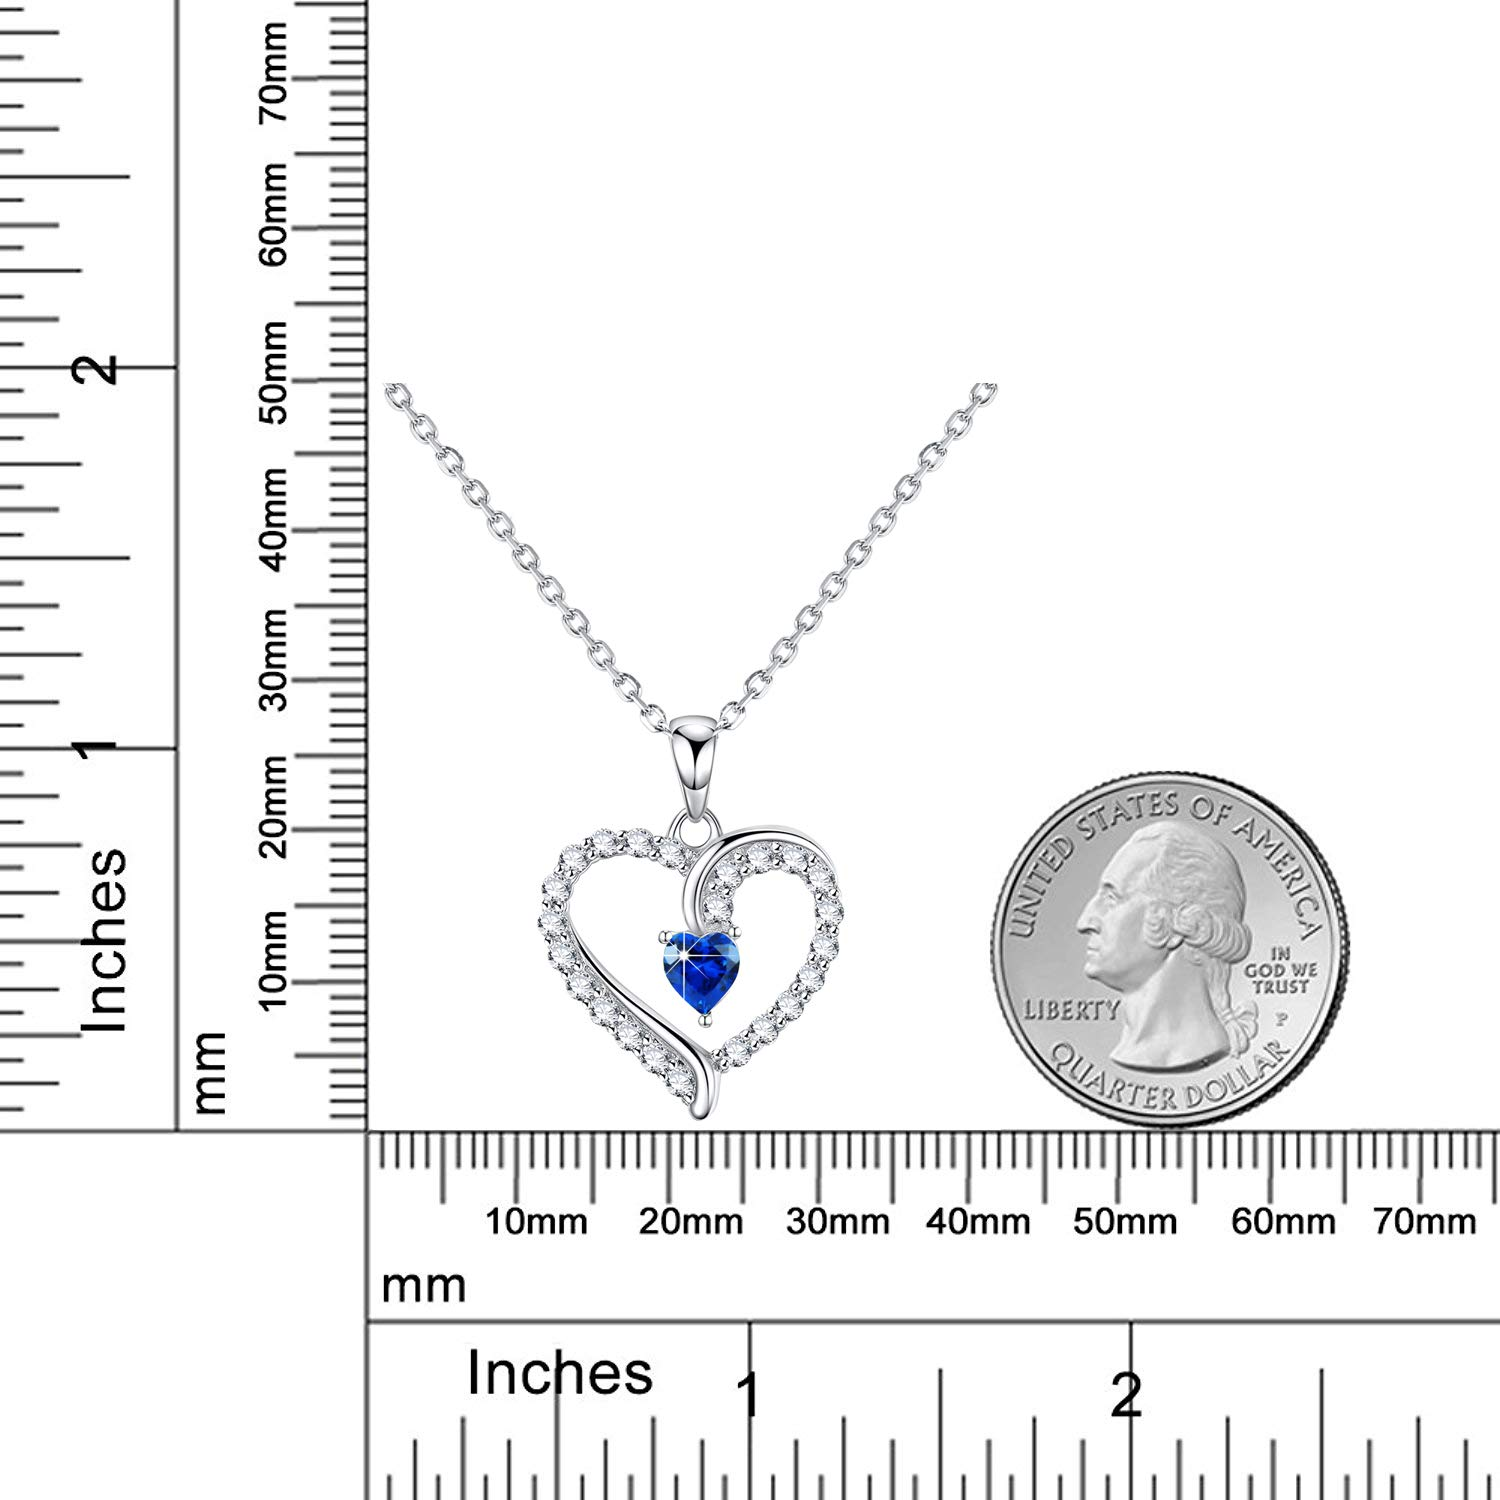 September Birthstone ❤️ You are The Only One ❤️ Love Heart Pendant Necklace for Wife Created Blue Sapphire Fine Jewelry Birthday for Women Her Girlfriend Daughter Sterling Silver by Dorella (Image #6)